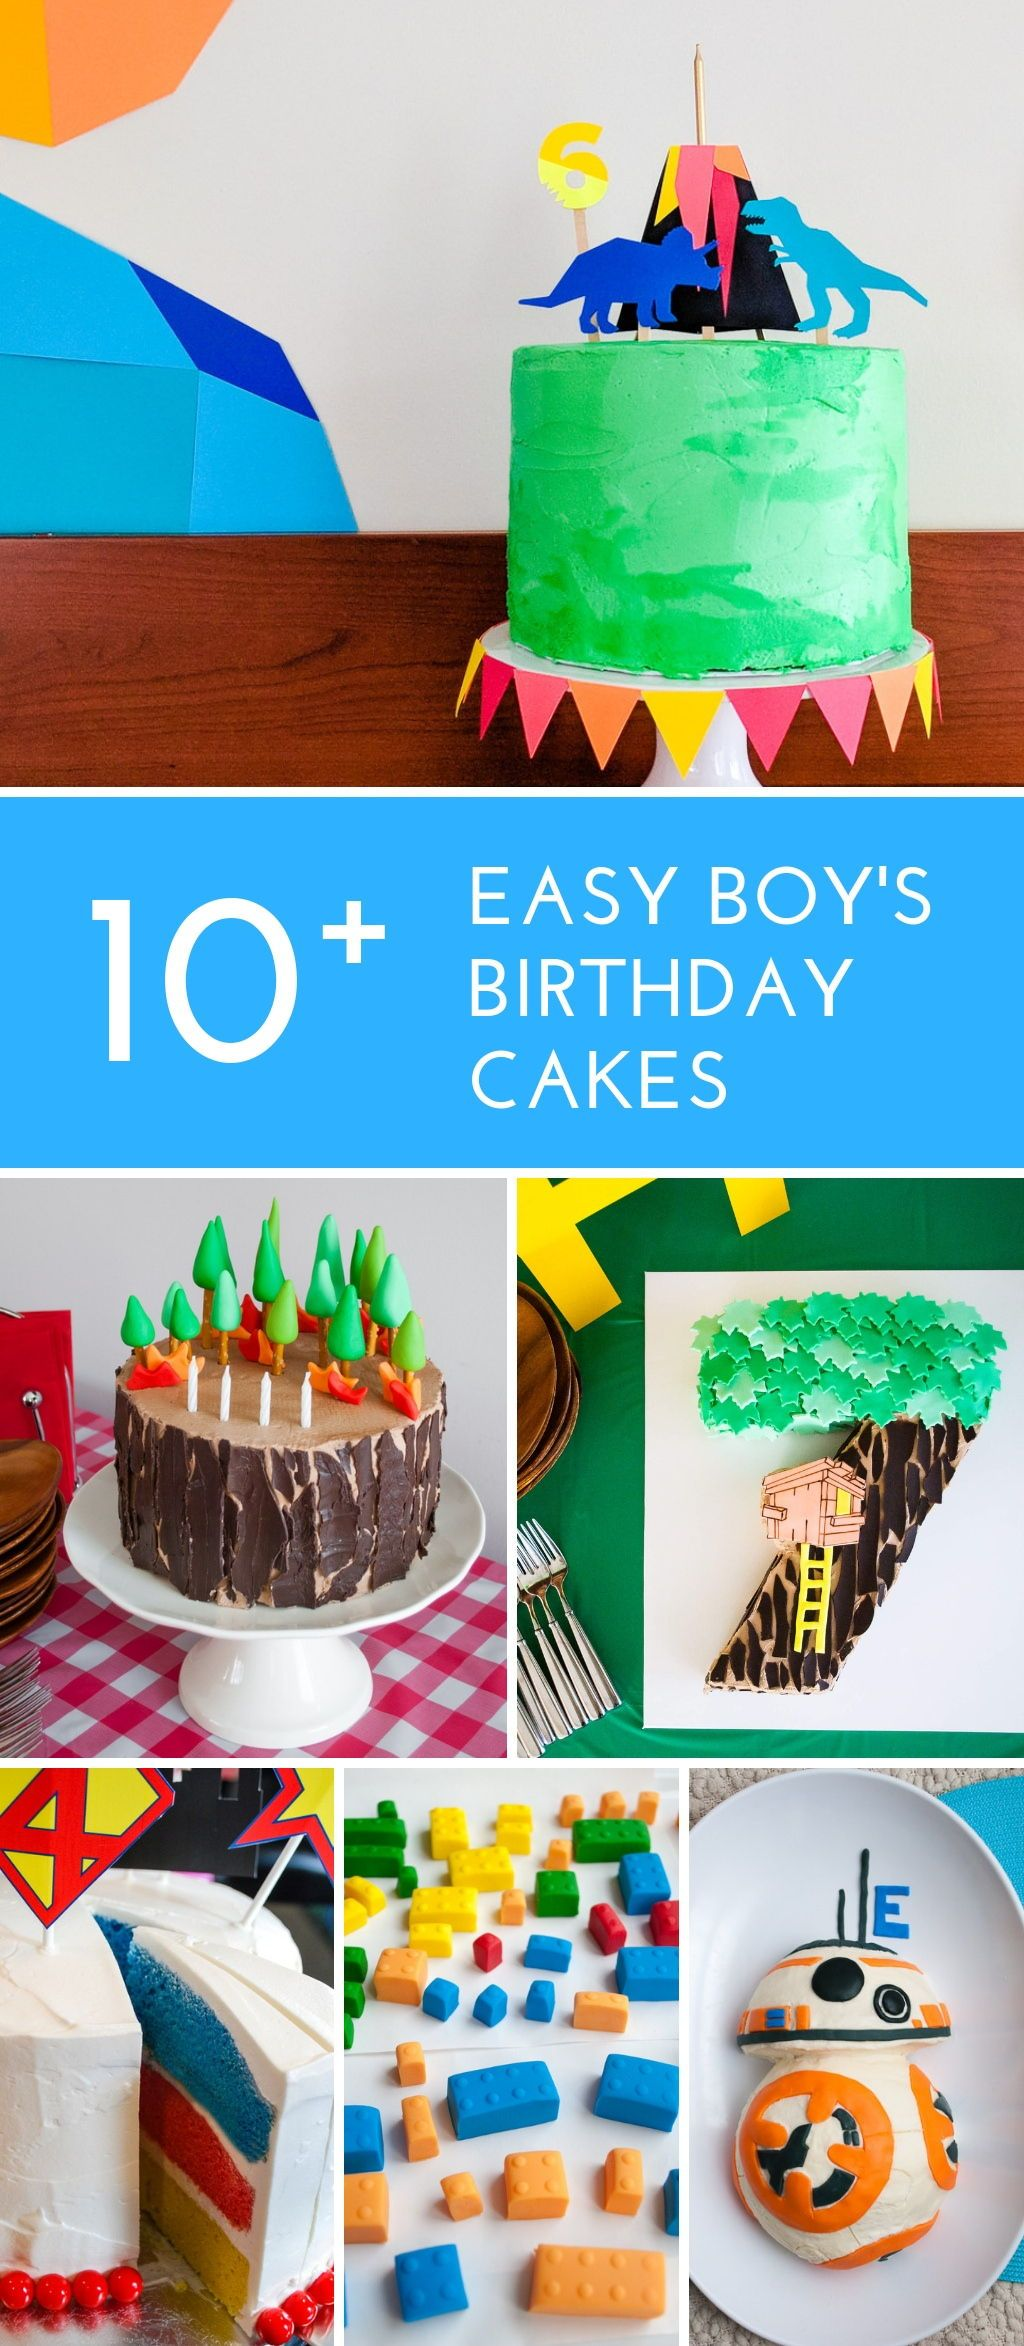 Easy Boys Birthday Cakes See These Simple DIY Boy Cake Ideas For Beginner Decorators Includes Age Dinosaur LEGO